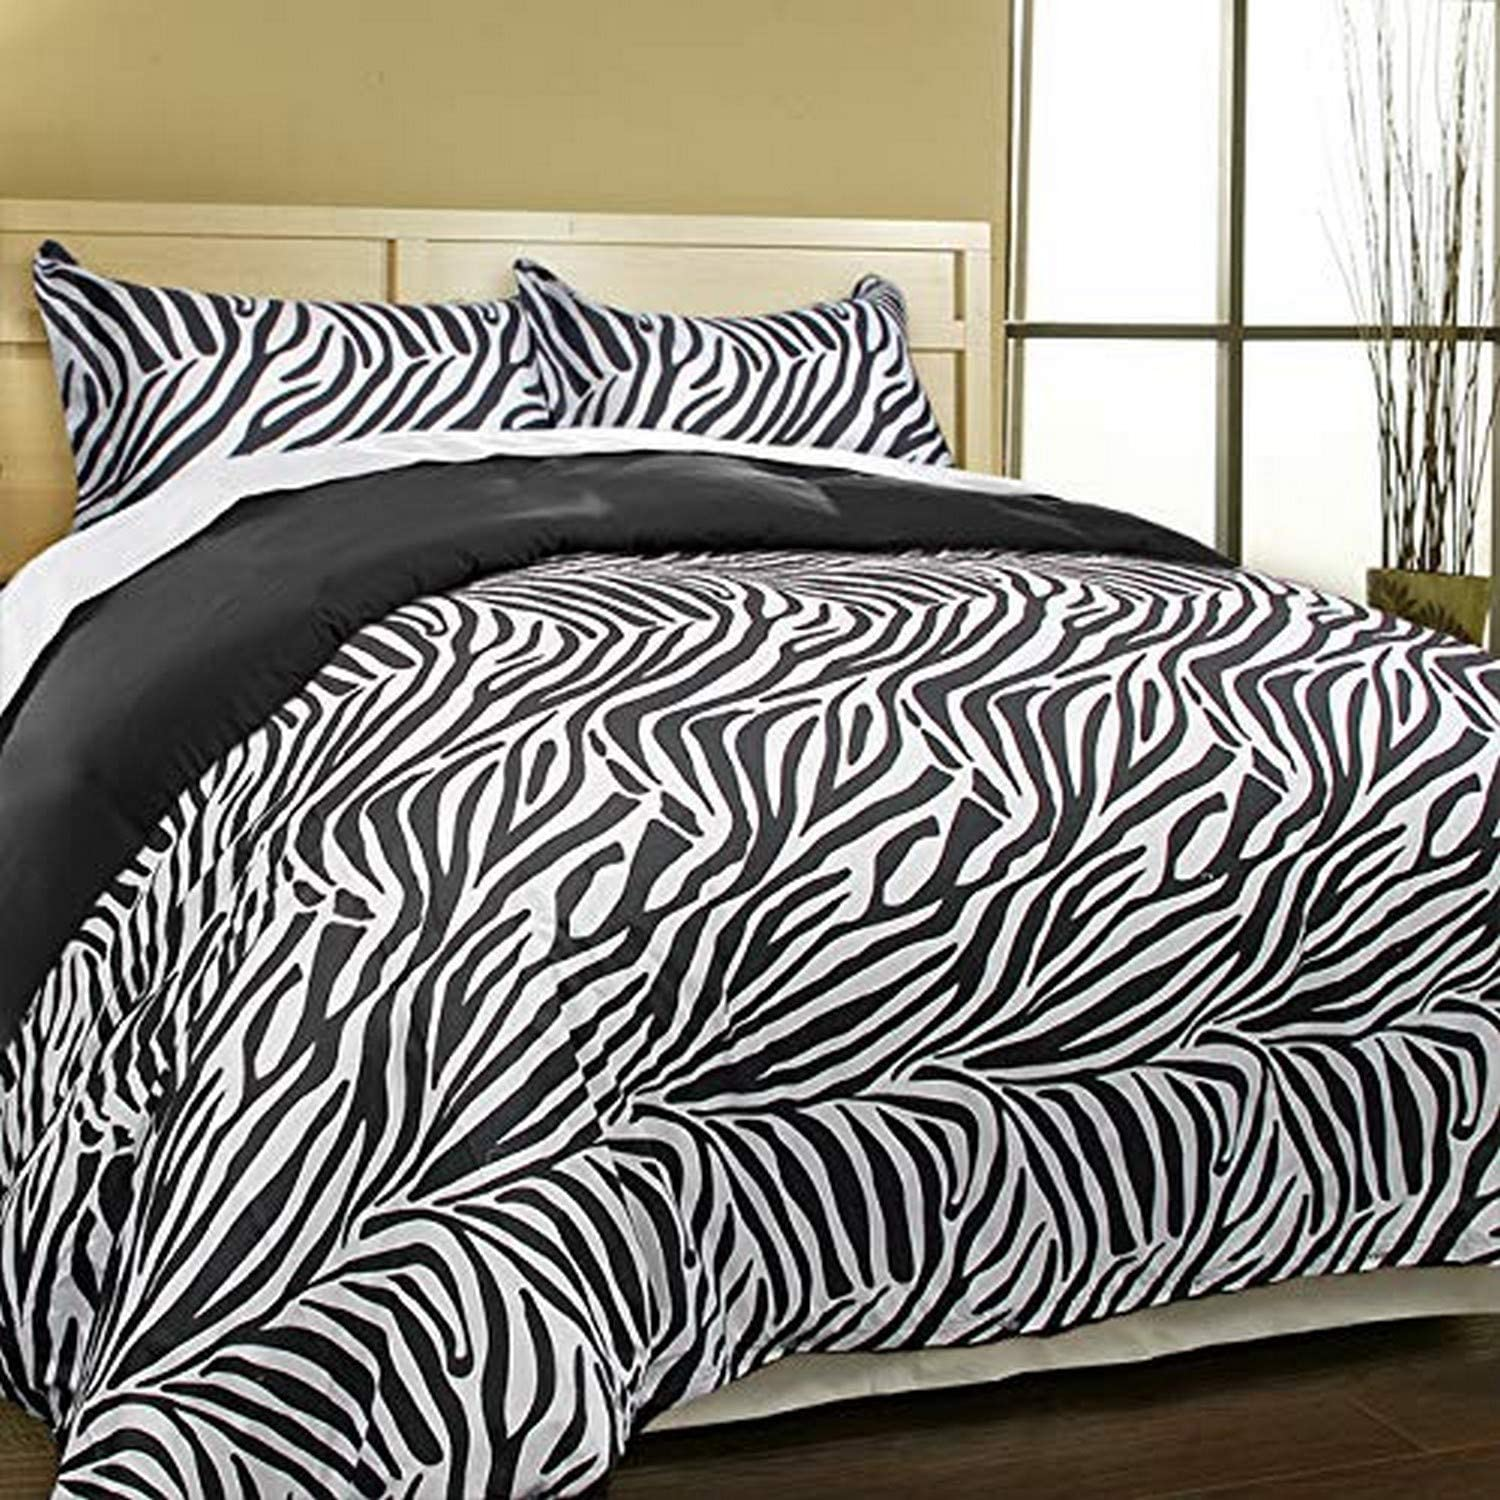 Blue Ridge Home Fashions Microifber Set King in Zebra Black Color Down Alternative COMFORTERS